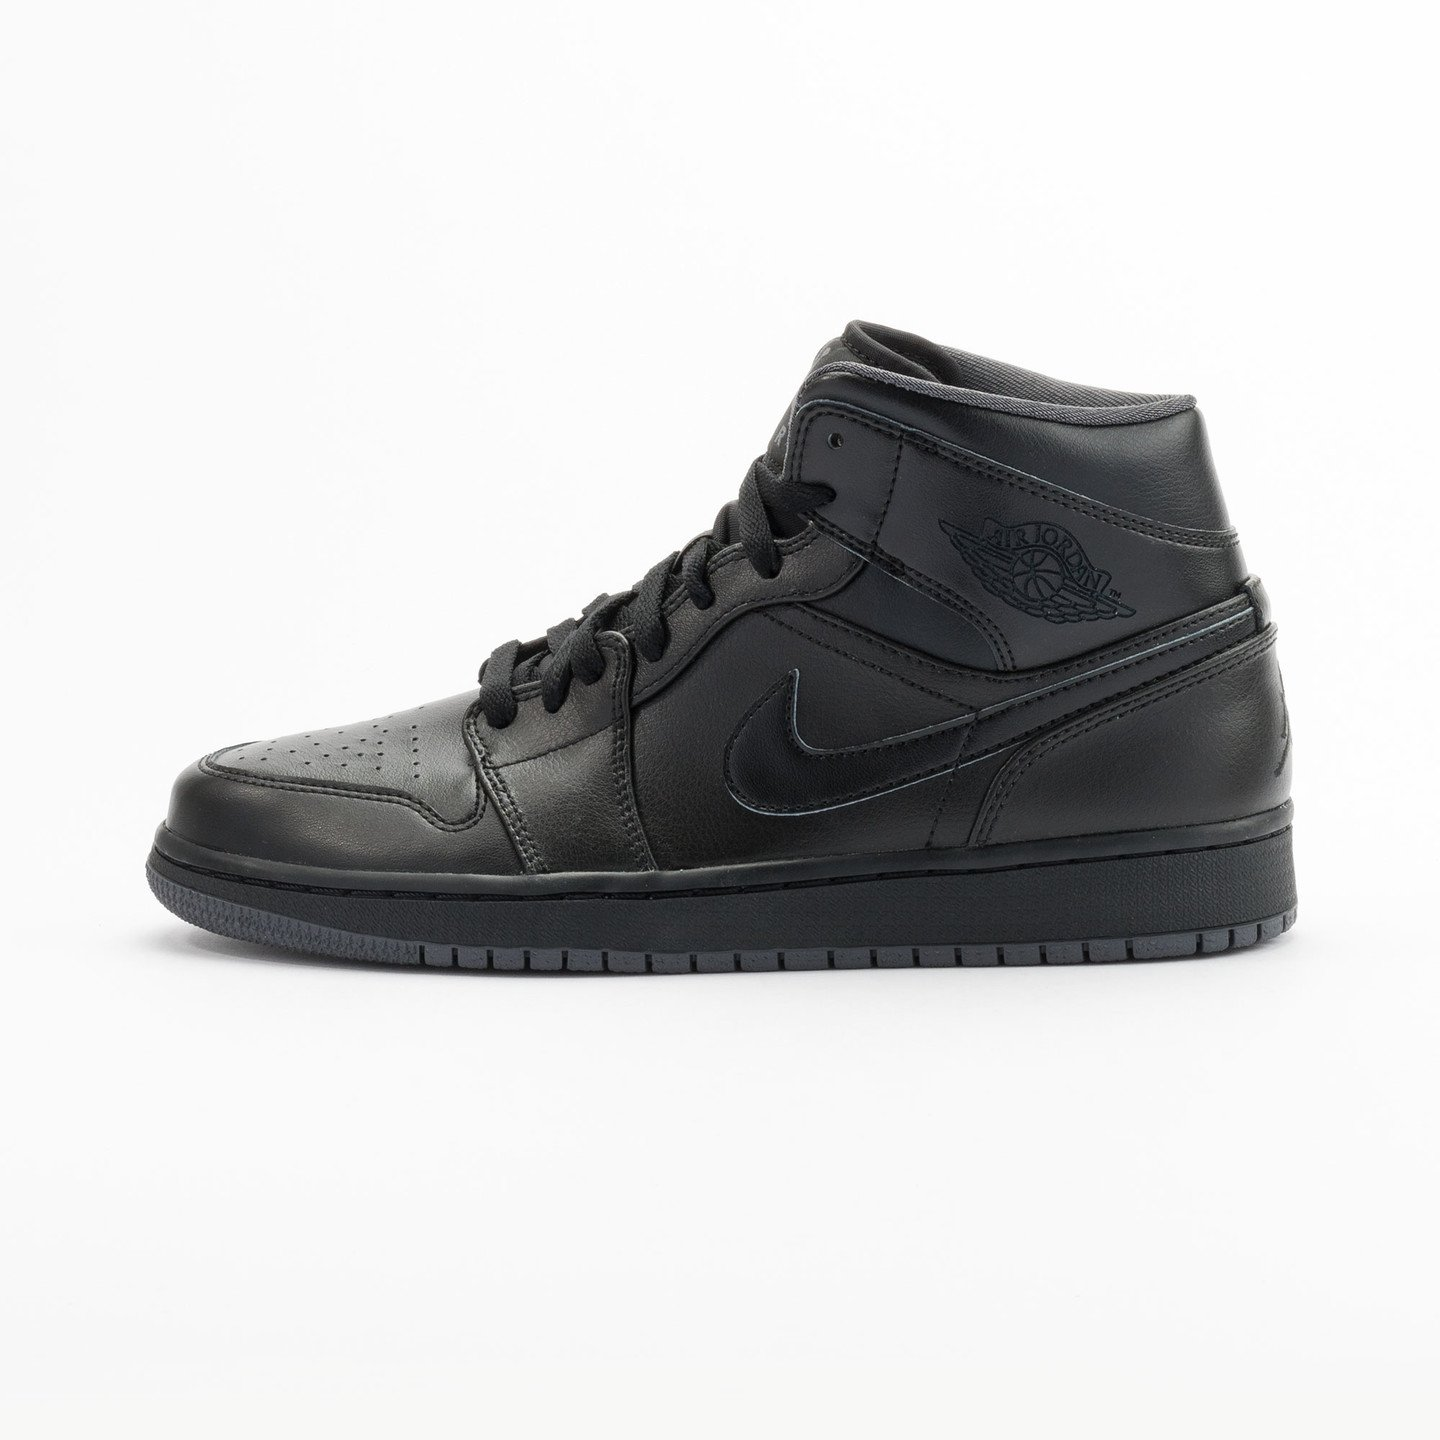 Nike Air Jordan 1 Mid Black / Dark Grey 554724-021-44